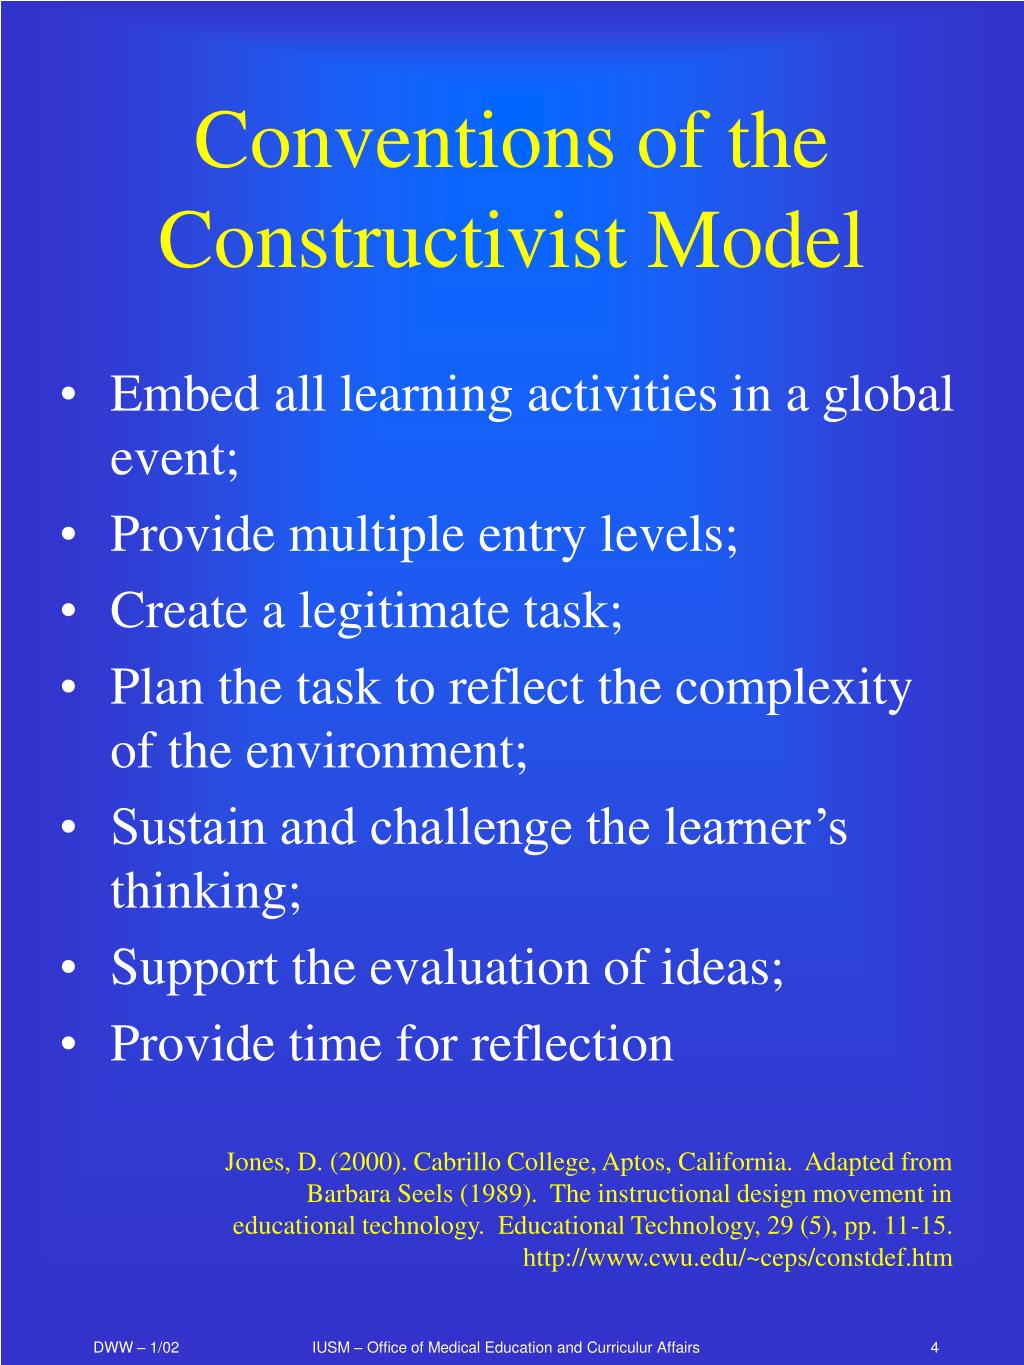 Conventions of the Constructivist Model